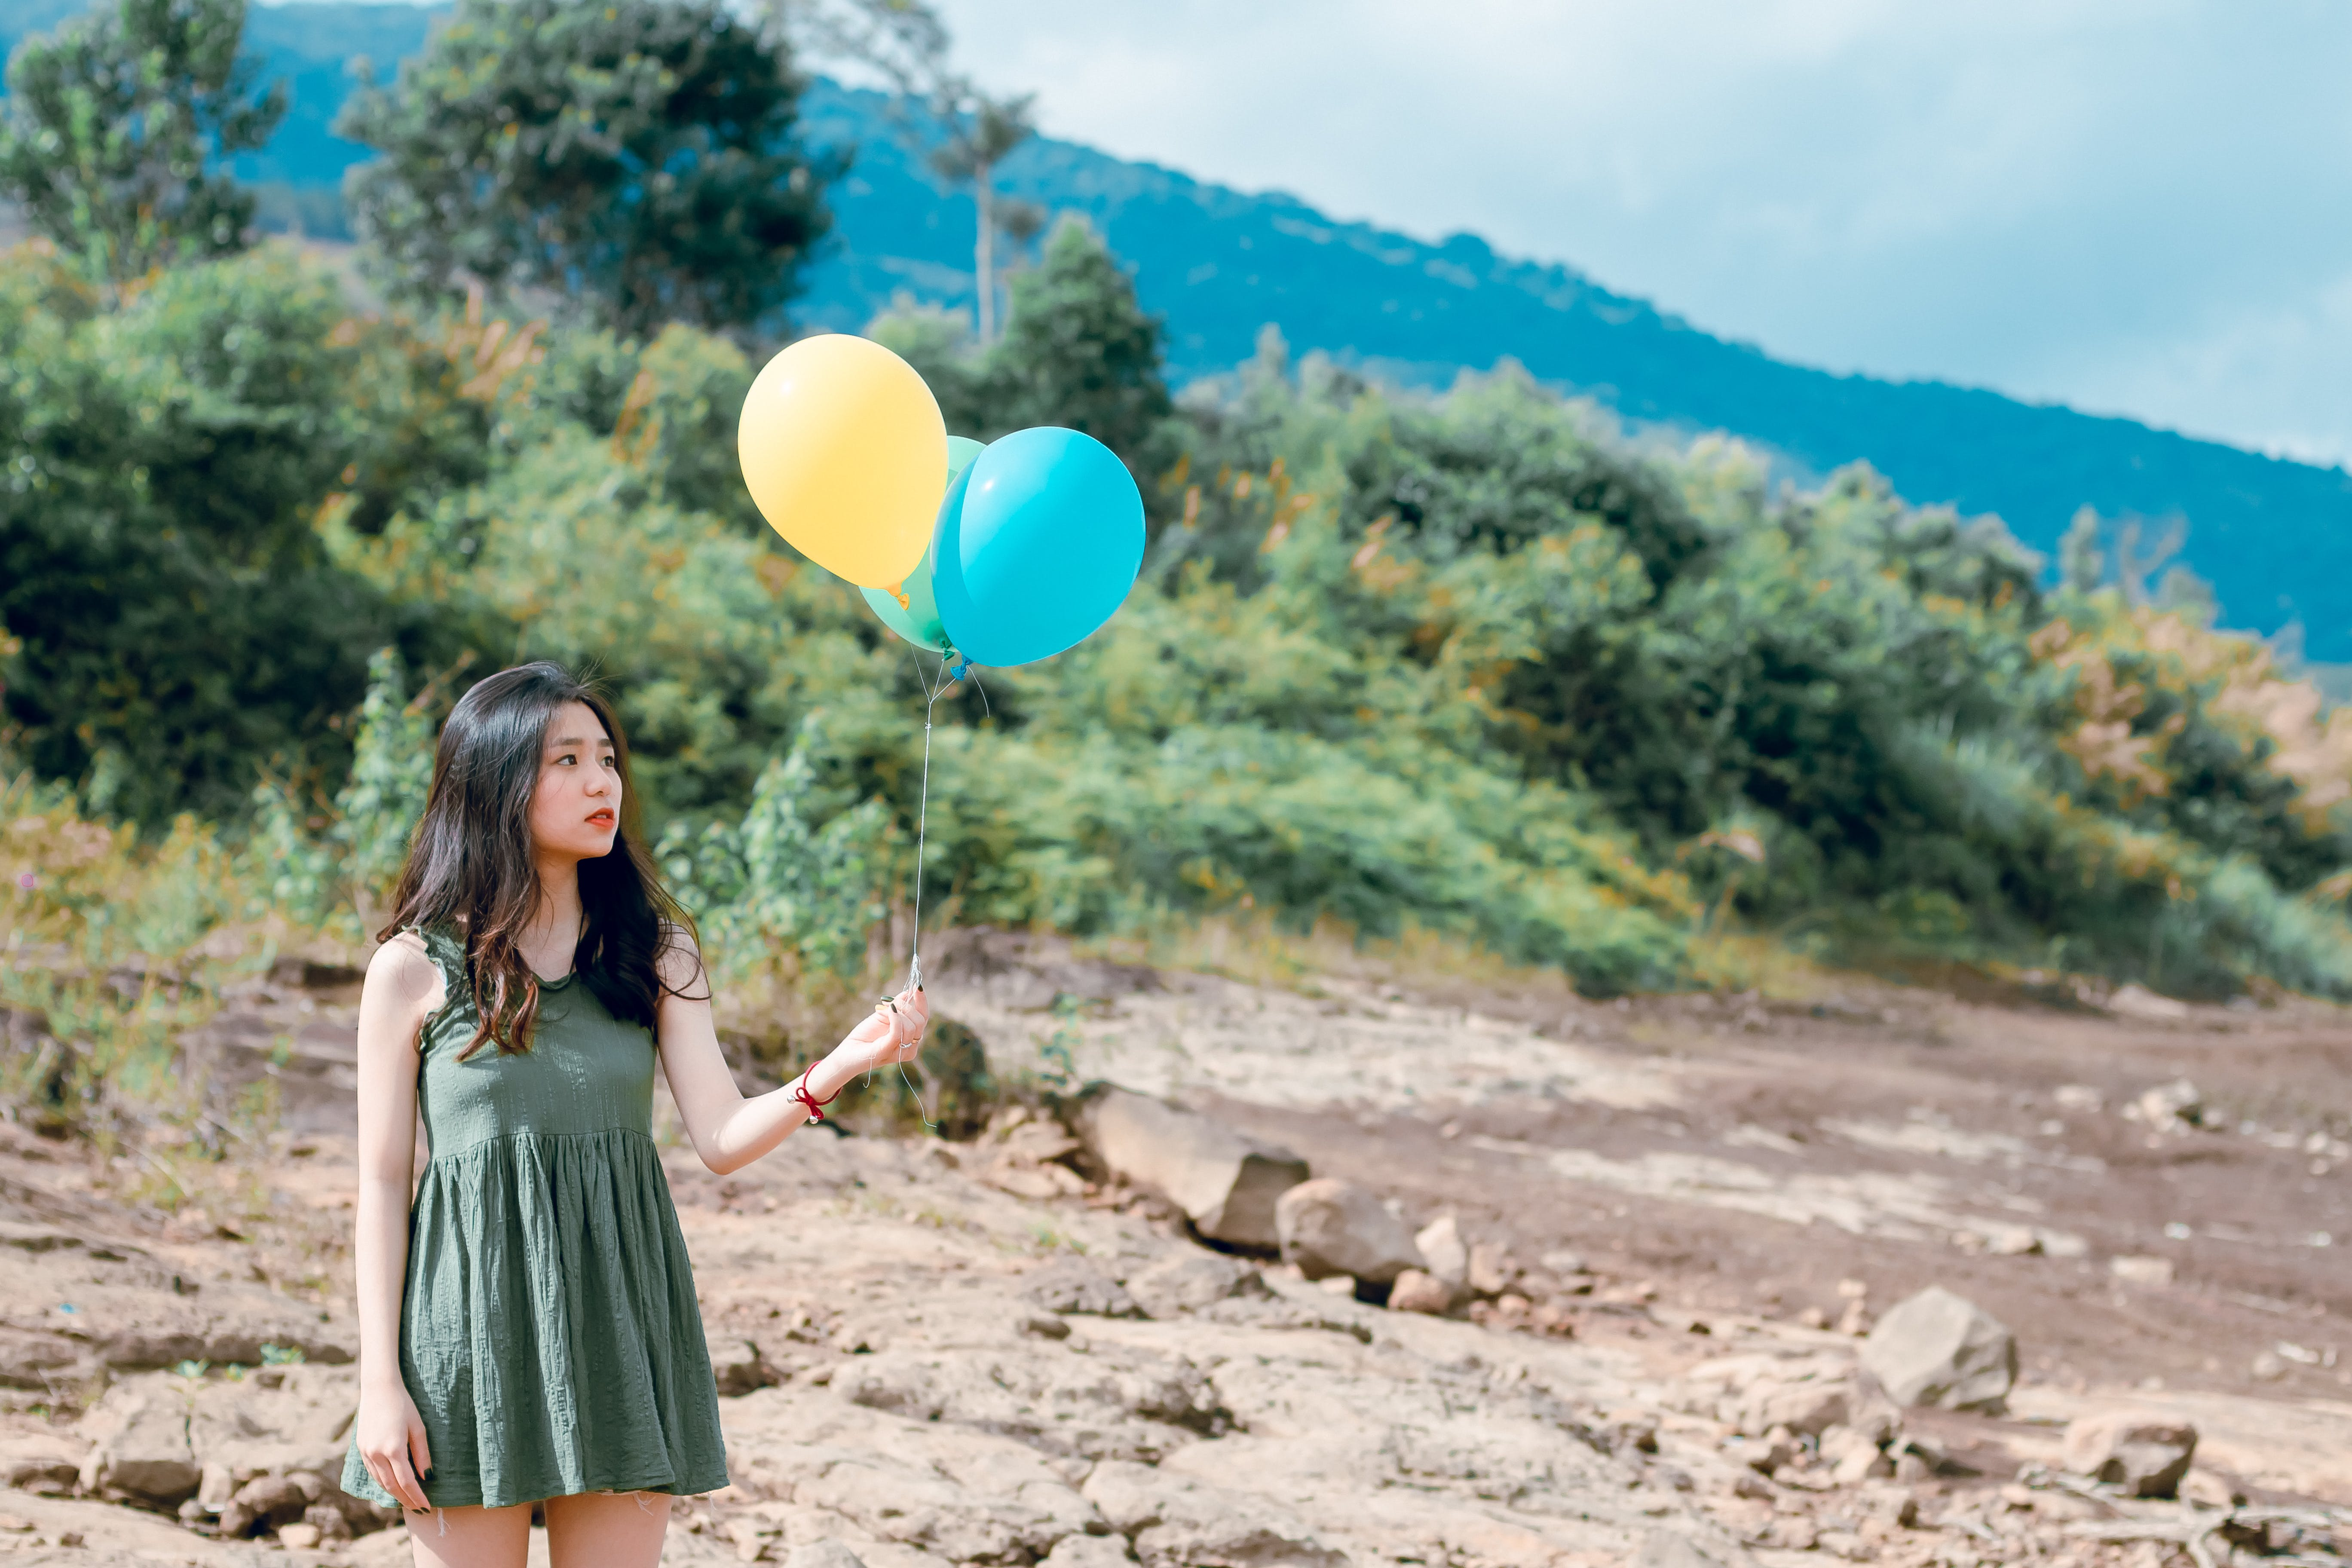 Portrait Photography of Woman Holding Balloons